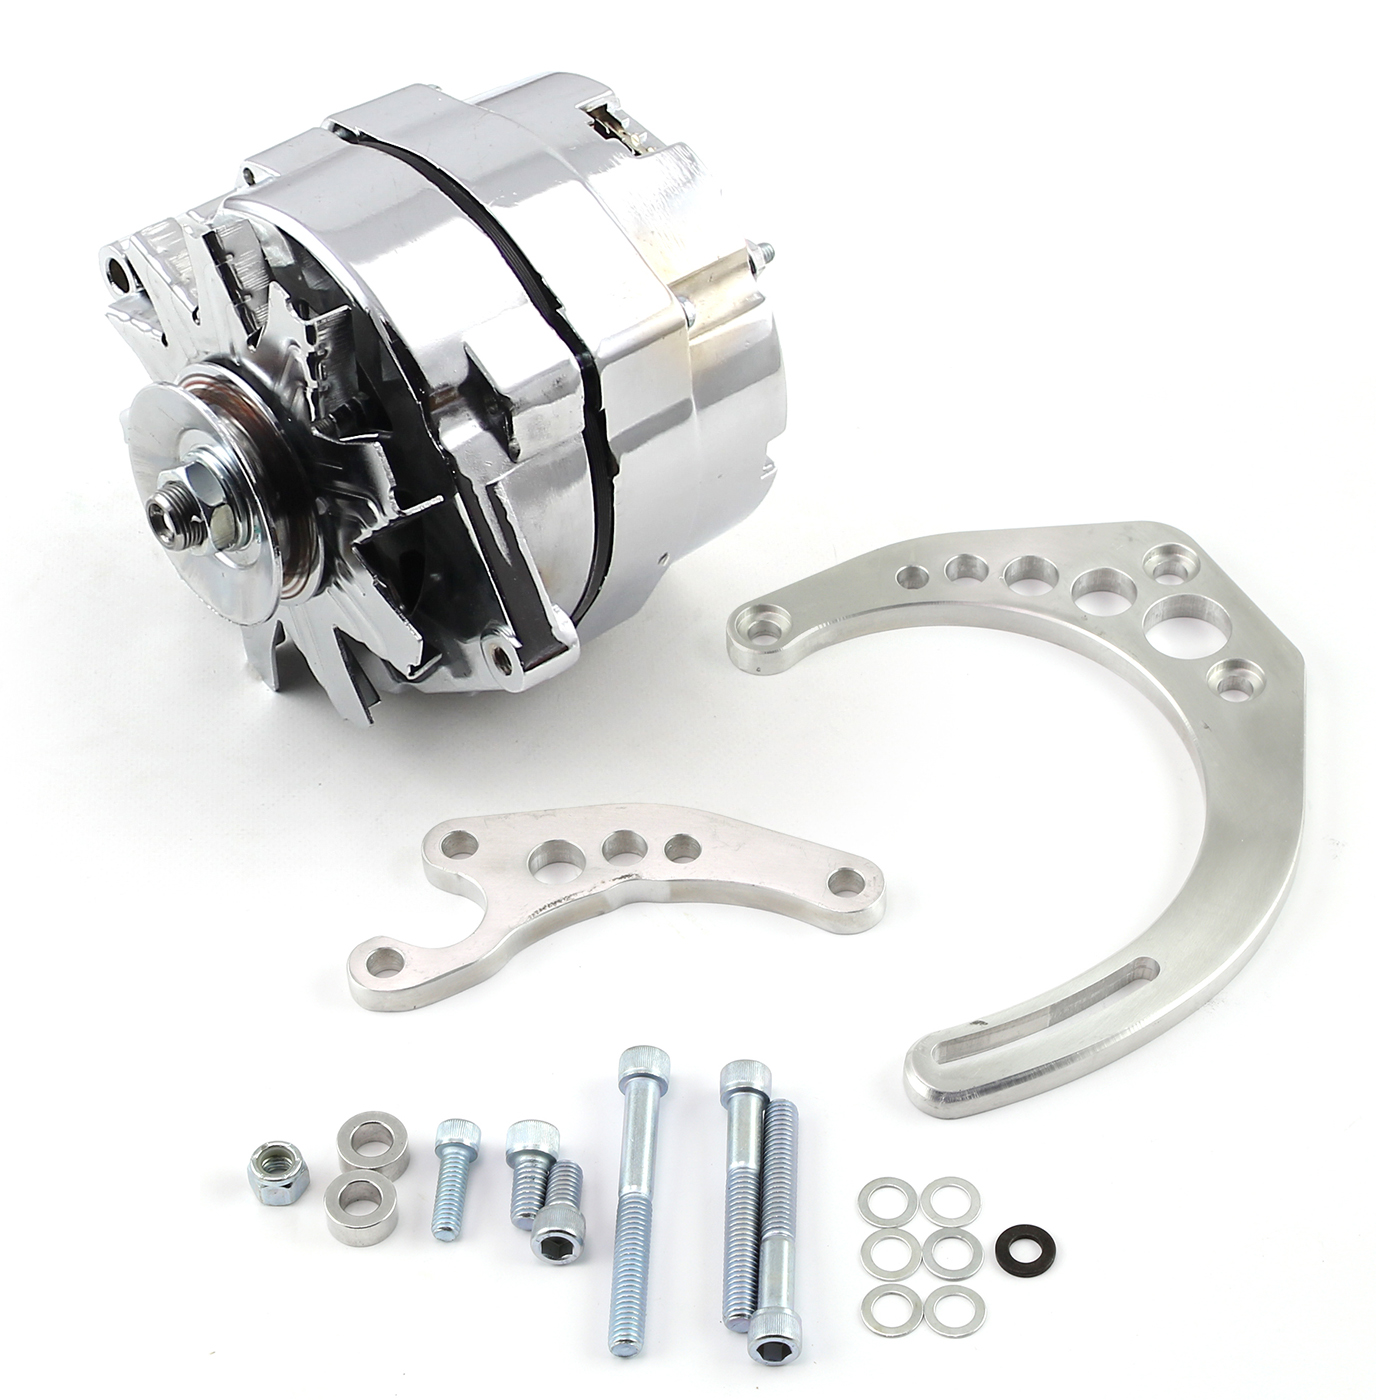 Chevy SBC Camel Hump Fuelie 100 Amp 1 Wire Alternator & LWP Billet Bracket Kit